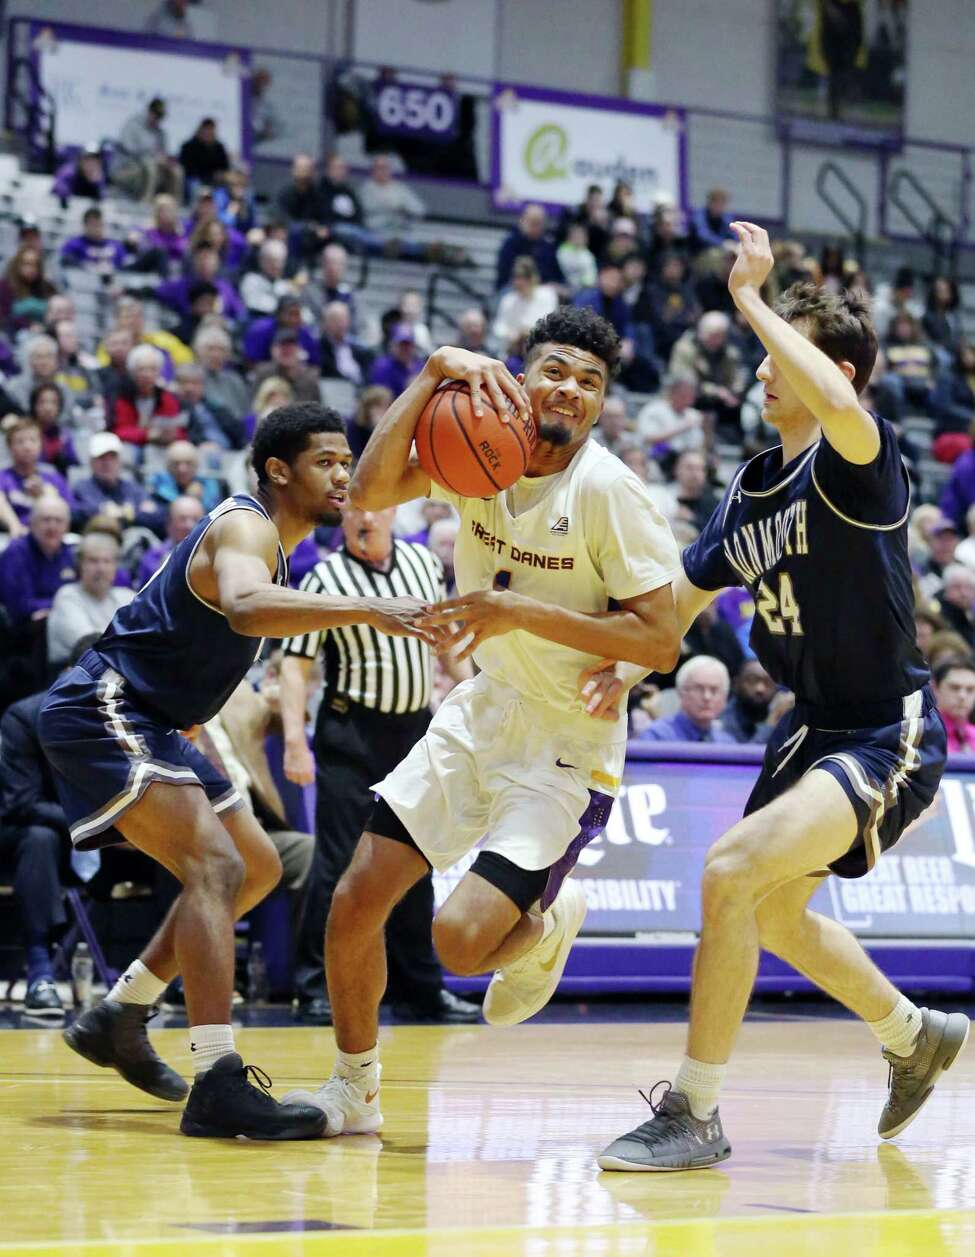 UAlbany forward Malachi De Sousa dribbles the ball during a game against Monmouth Saturday Dec. 8, 2018 at the SEFCU Arena. (Phoebe Sheehan/Special to The Times Union)